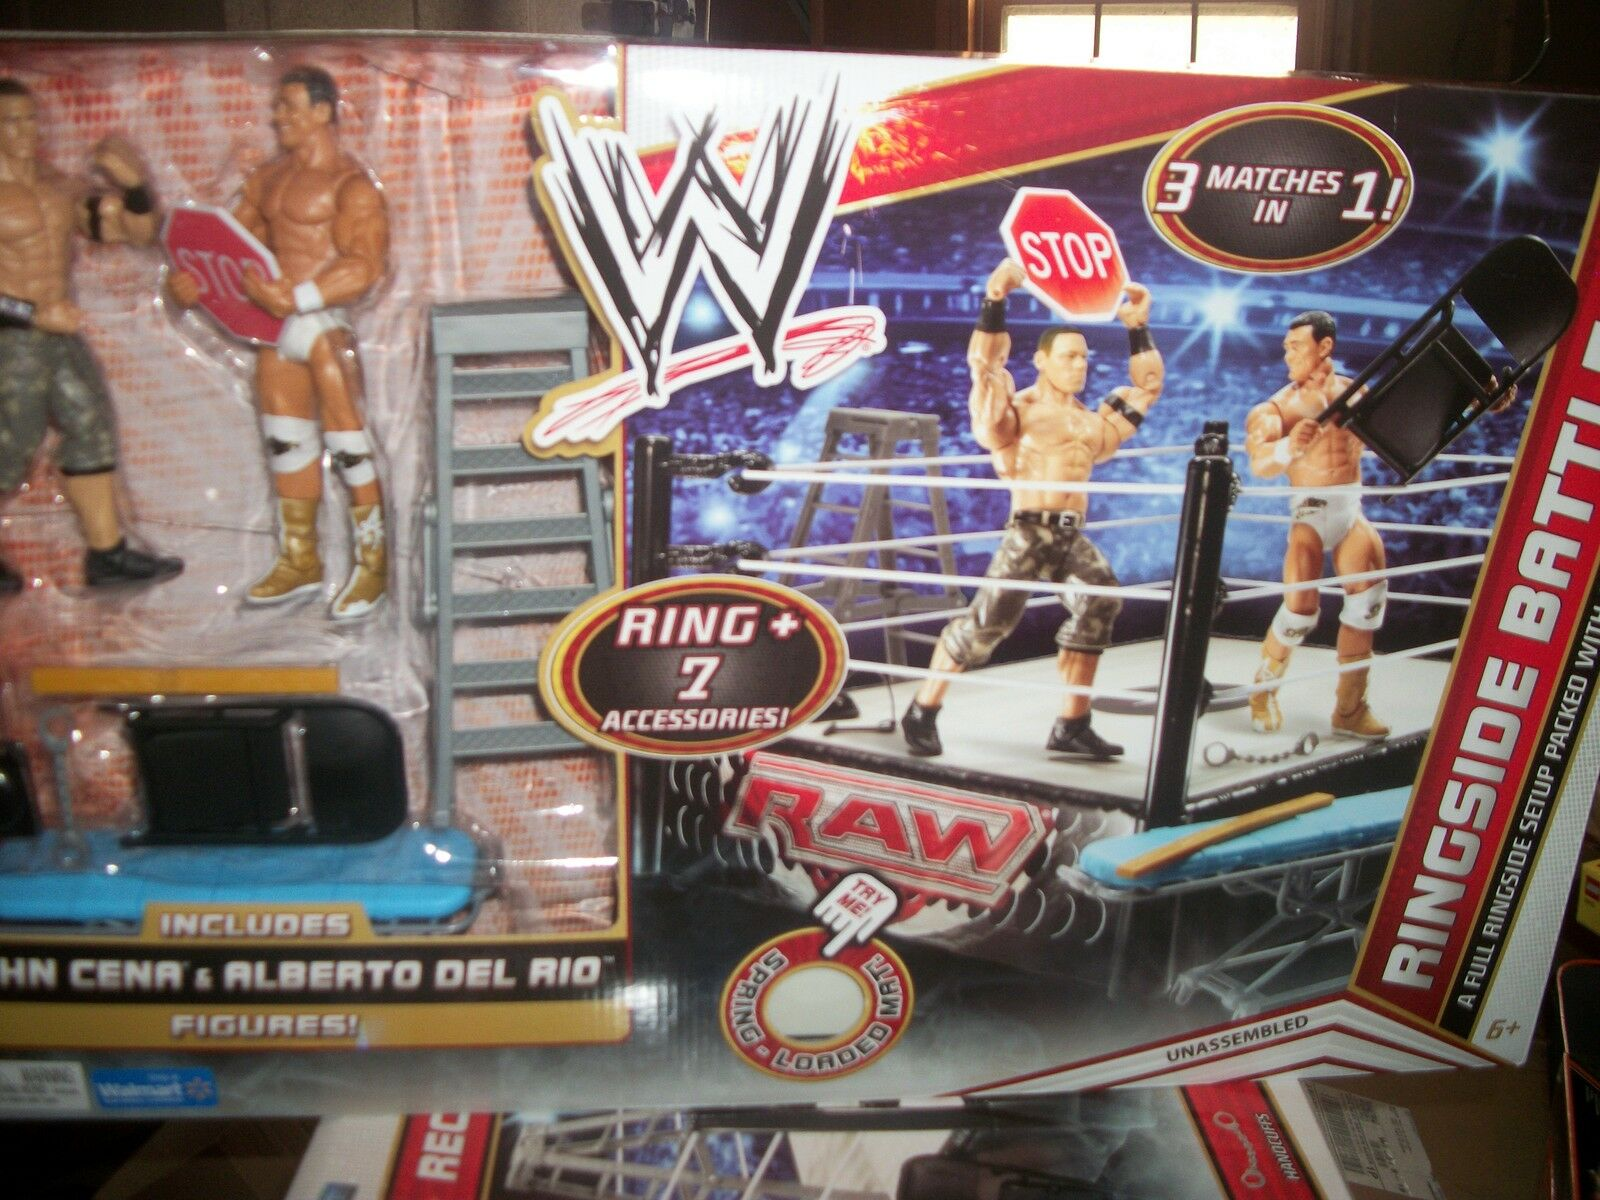 New WWE No DQ Stretcher Match 3-1 Ring + Cena  Del Rio 7 Ring Side Battle  NEW